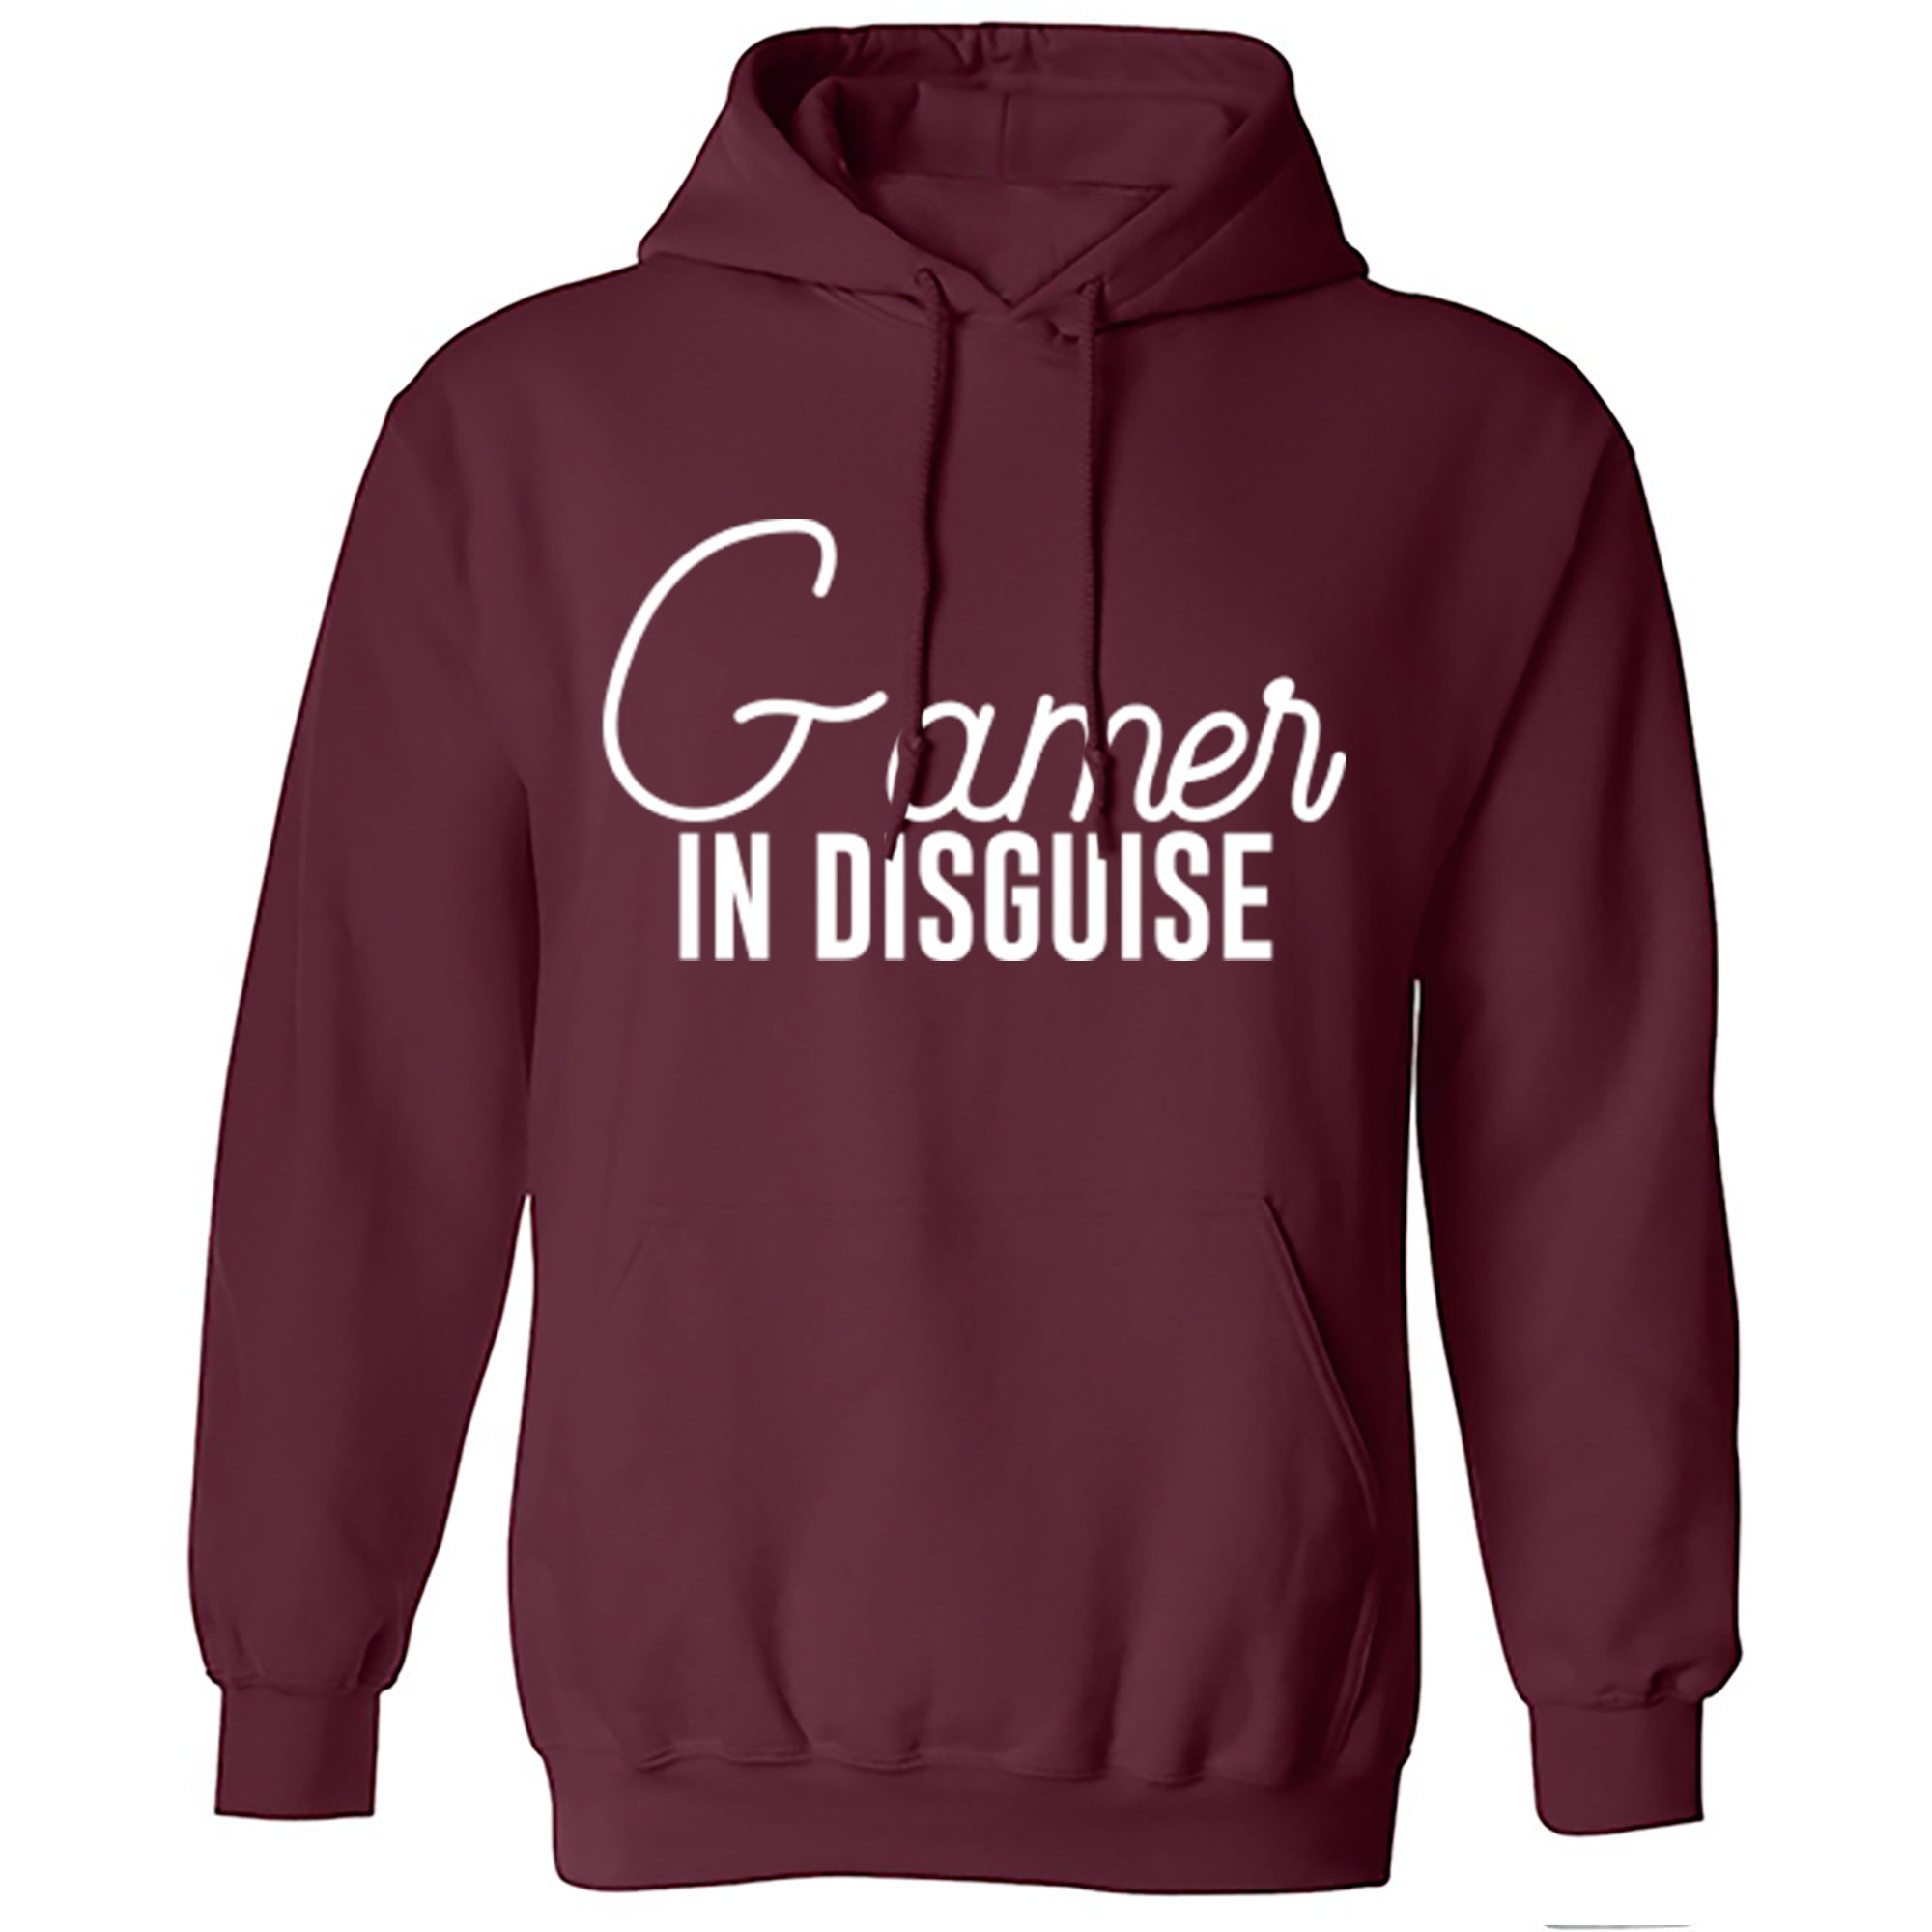 Gamer In Disguise Unisex Hoodie S0048 - Illustrated Identity Ltd.